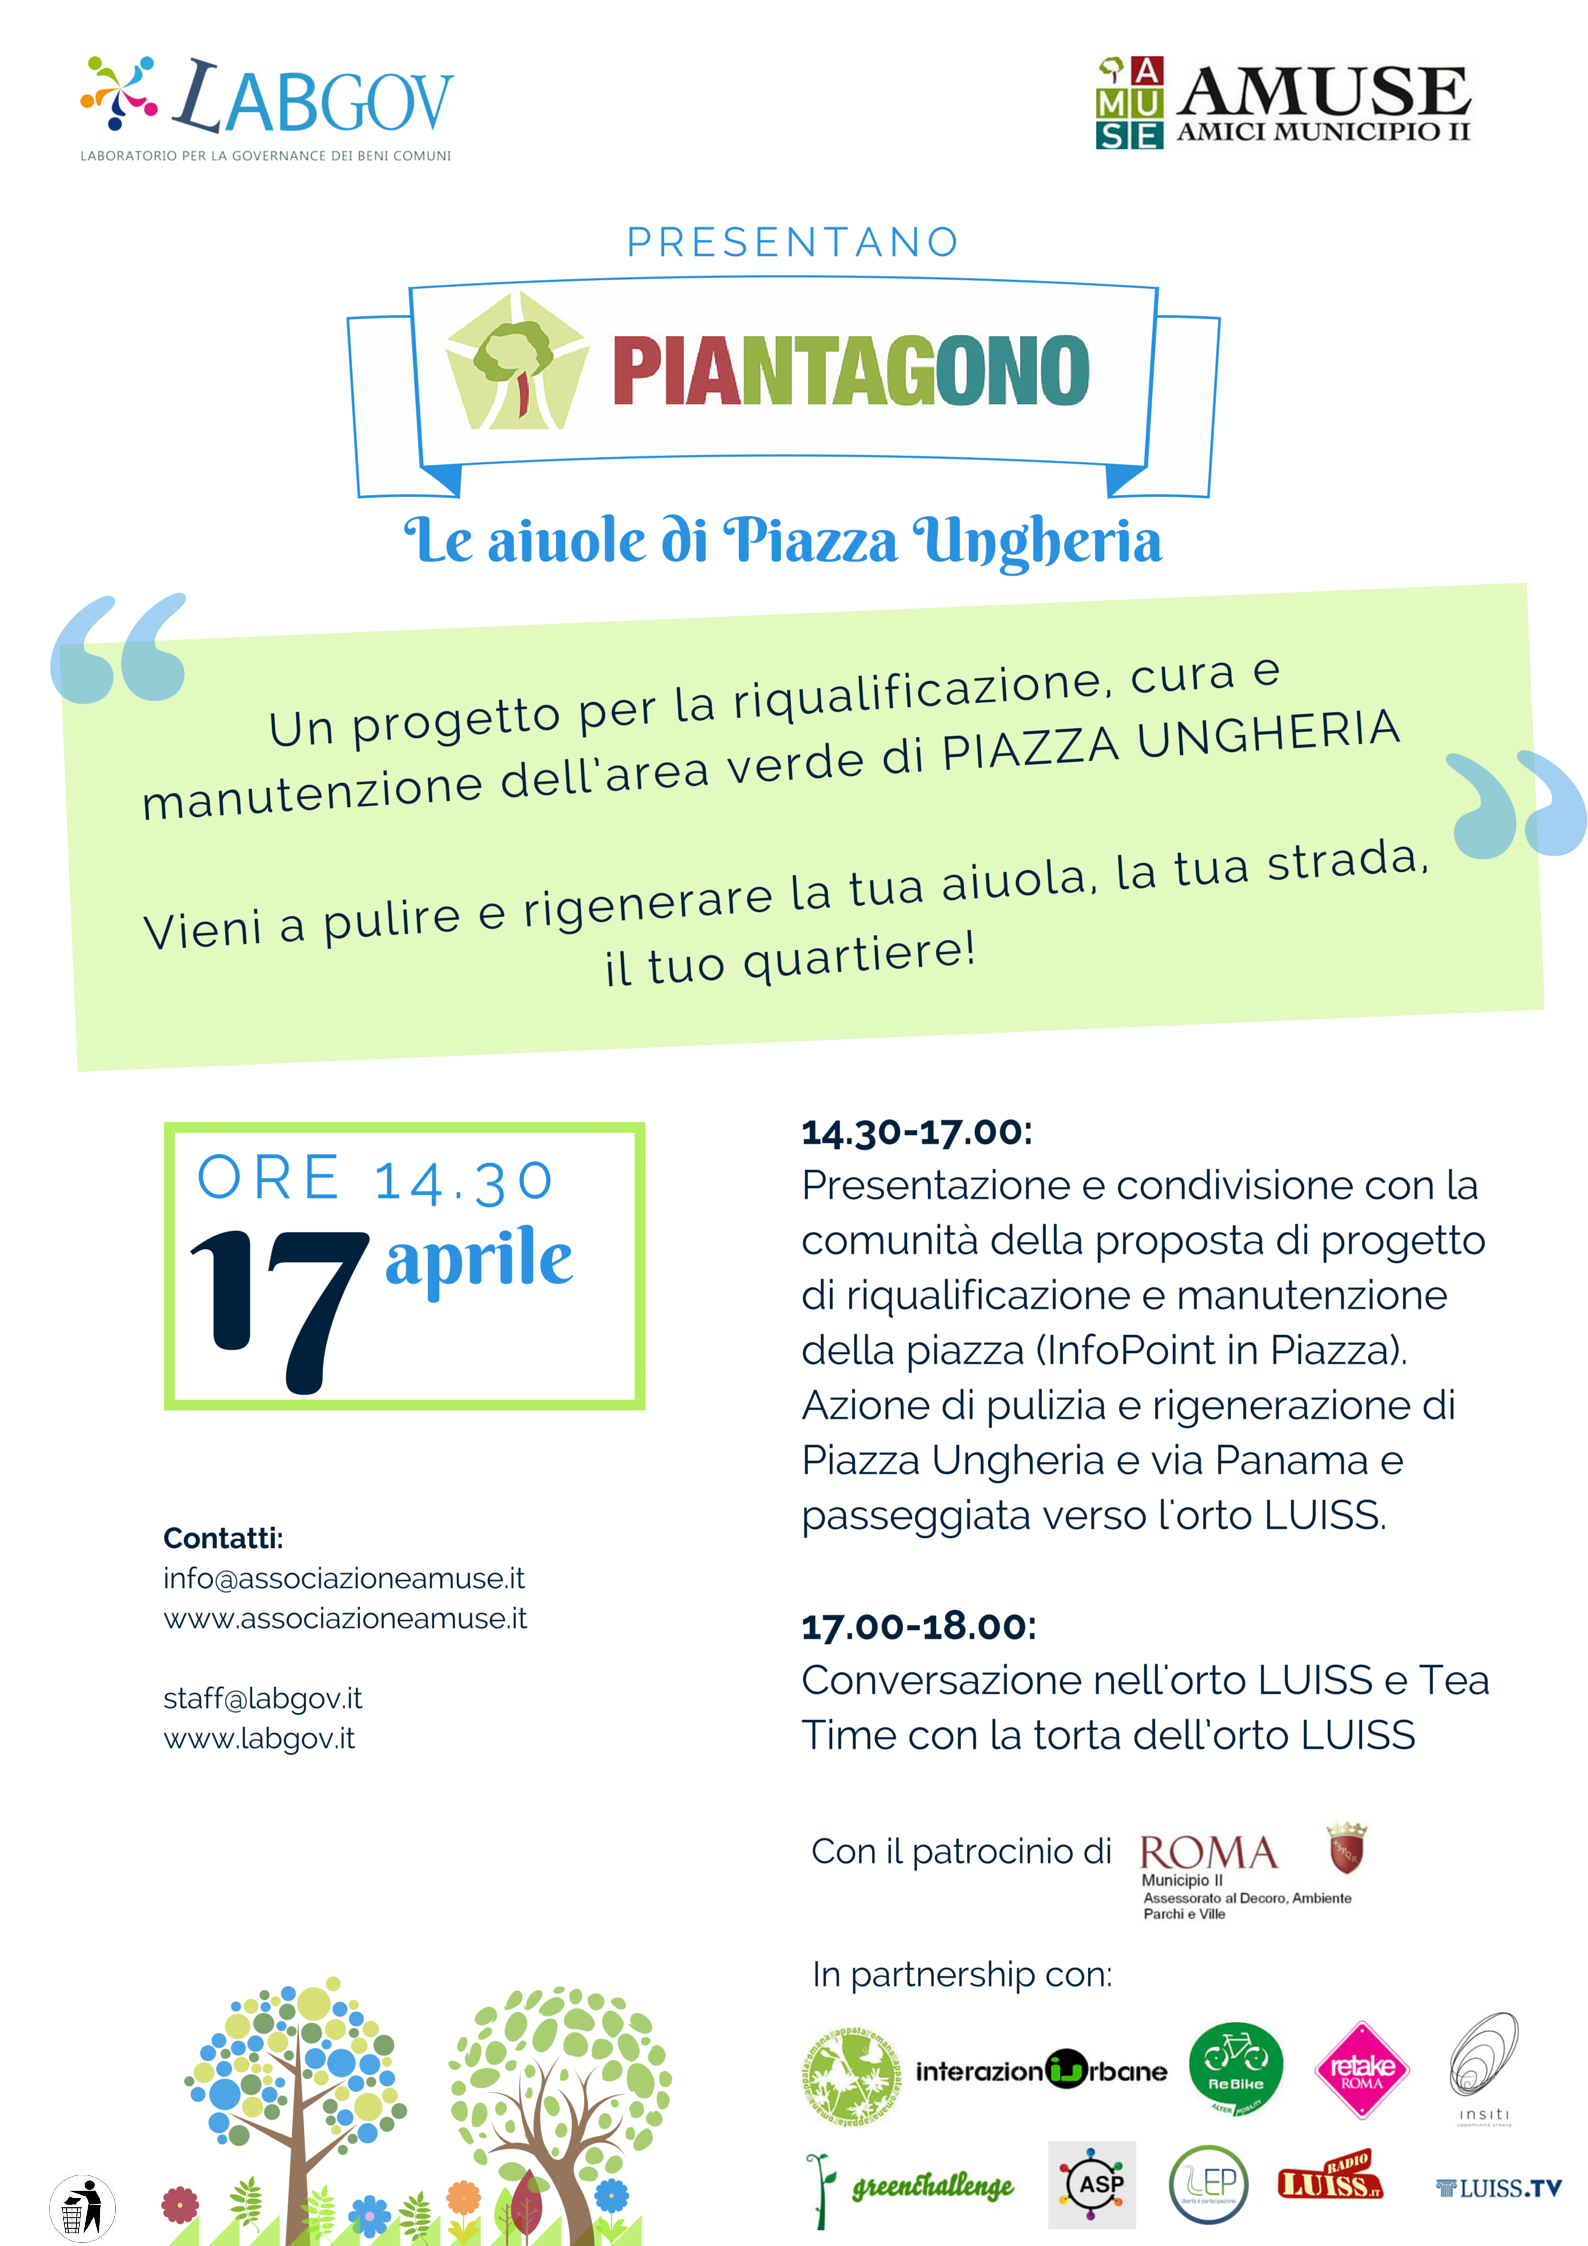 PIANTAGONO – Cleaning our flowerbed to regenerate our neighbourhood!